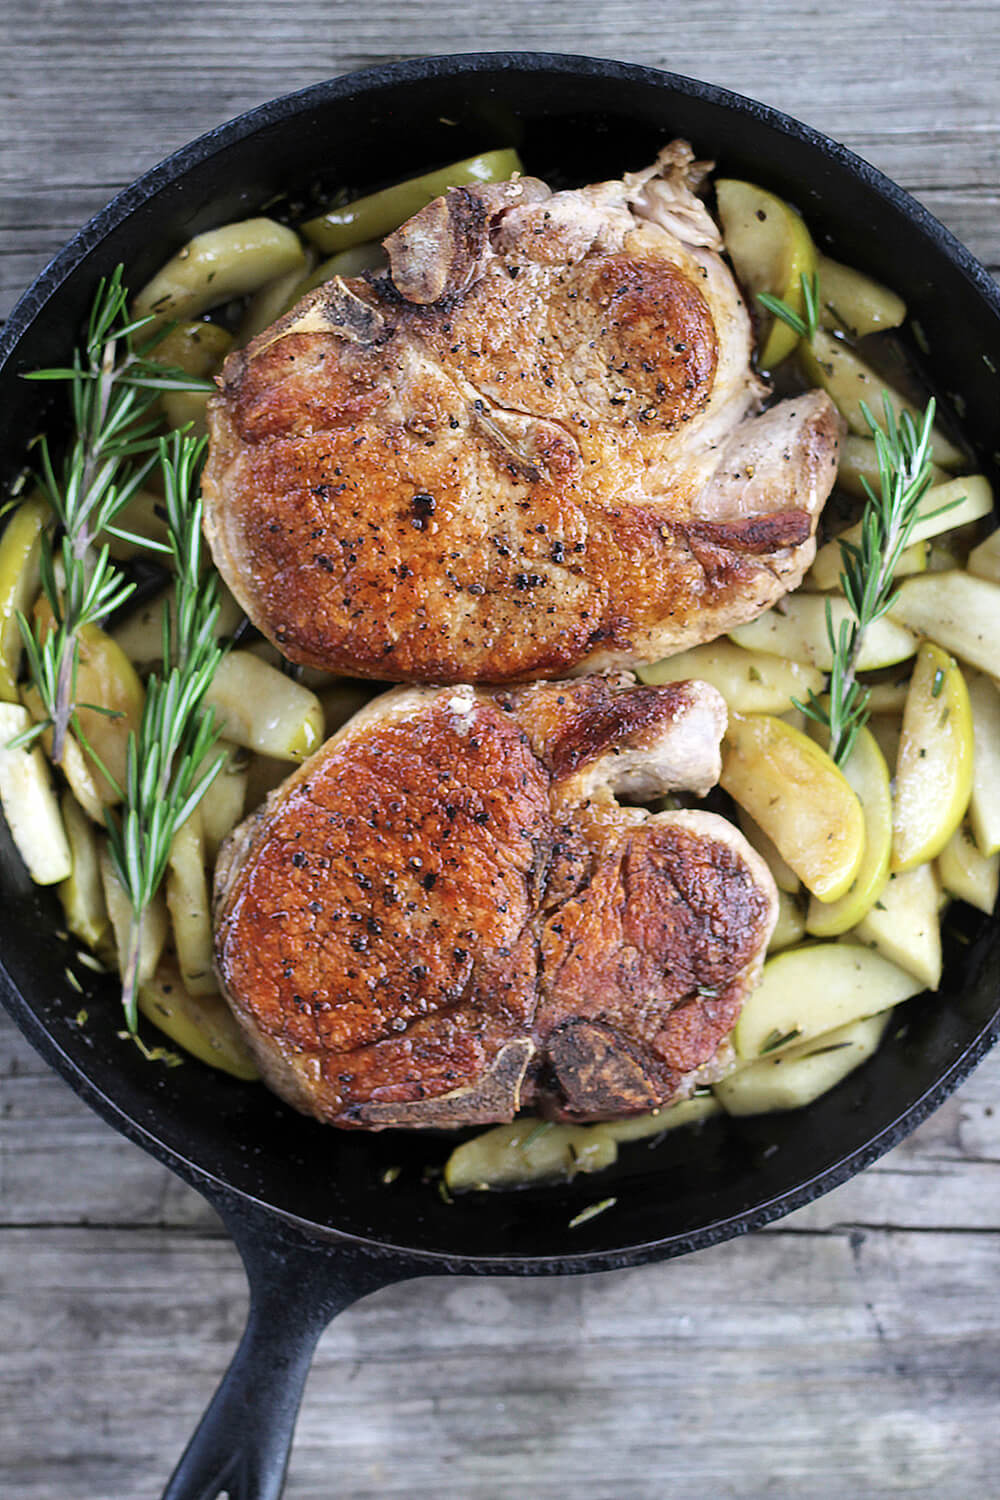 Rosemary Pork Chops with Apples